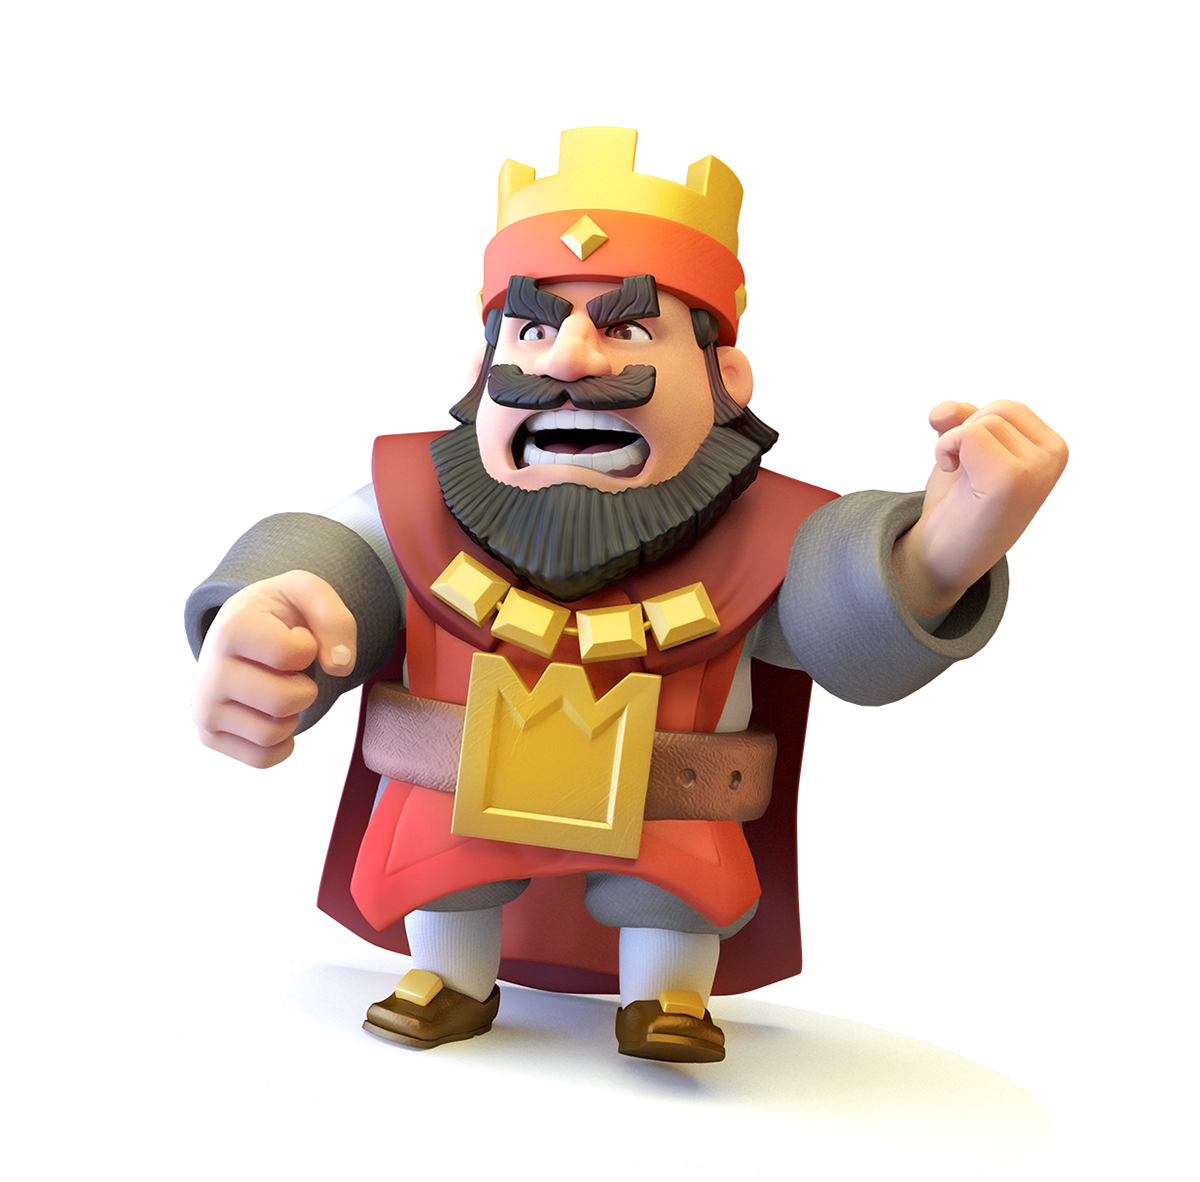 King from Clash Royale on Behance.